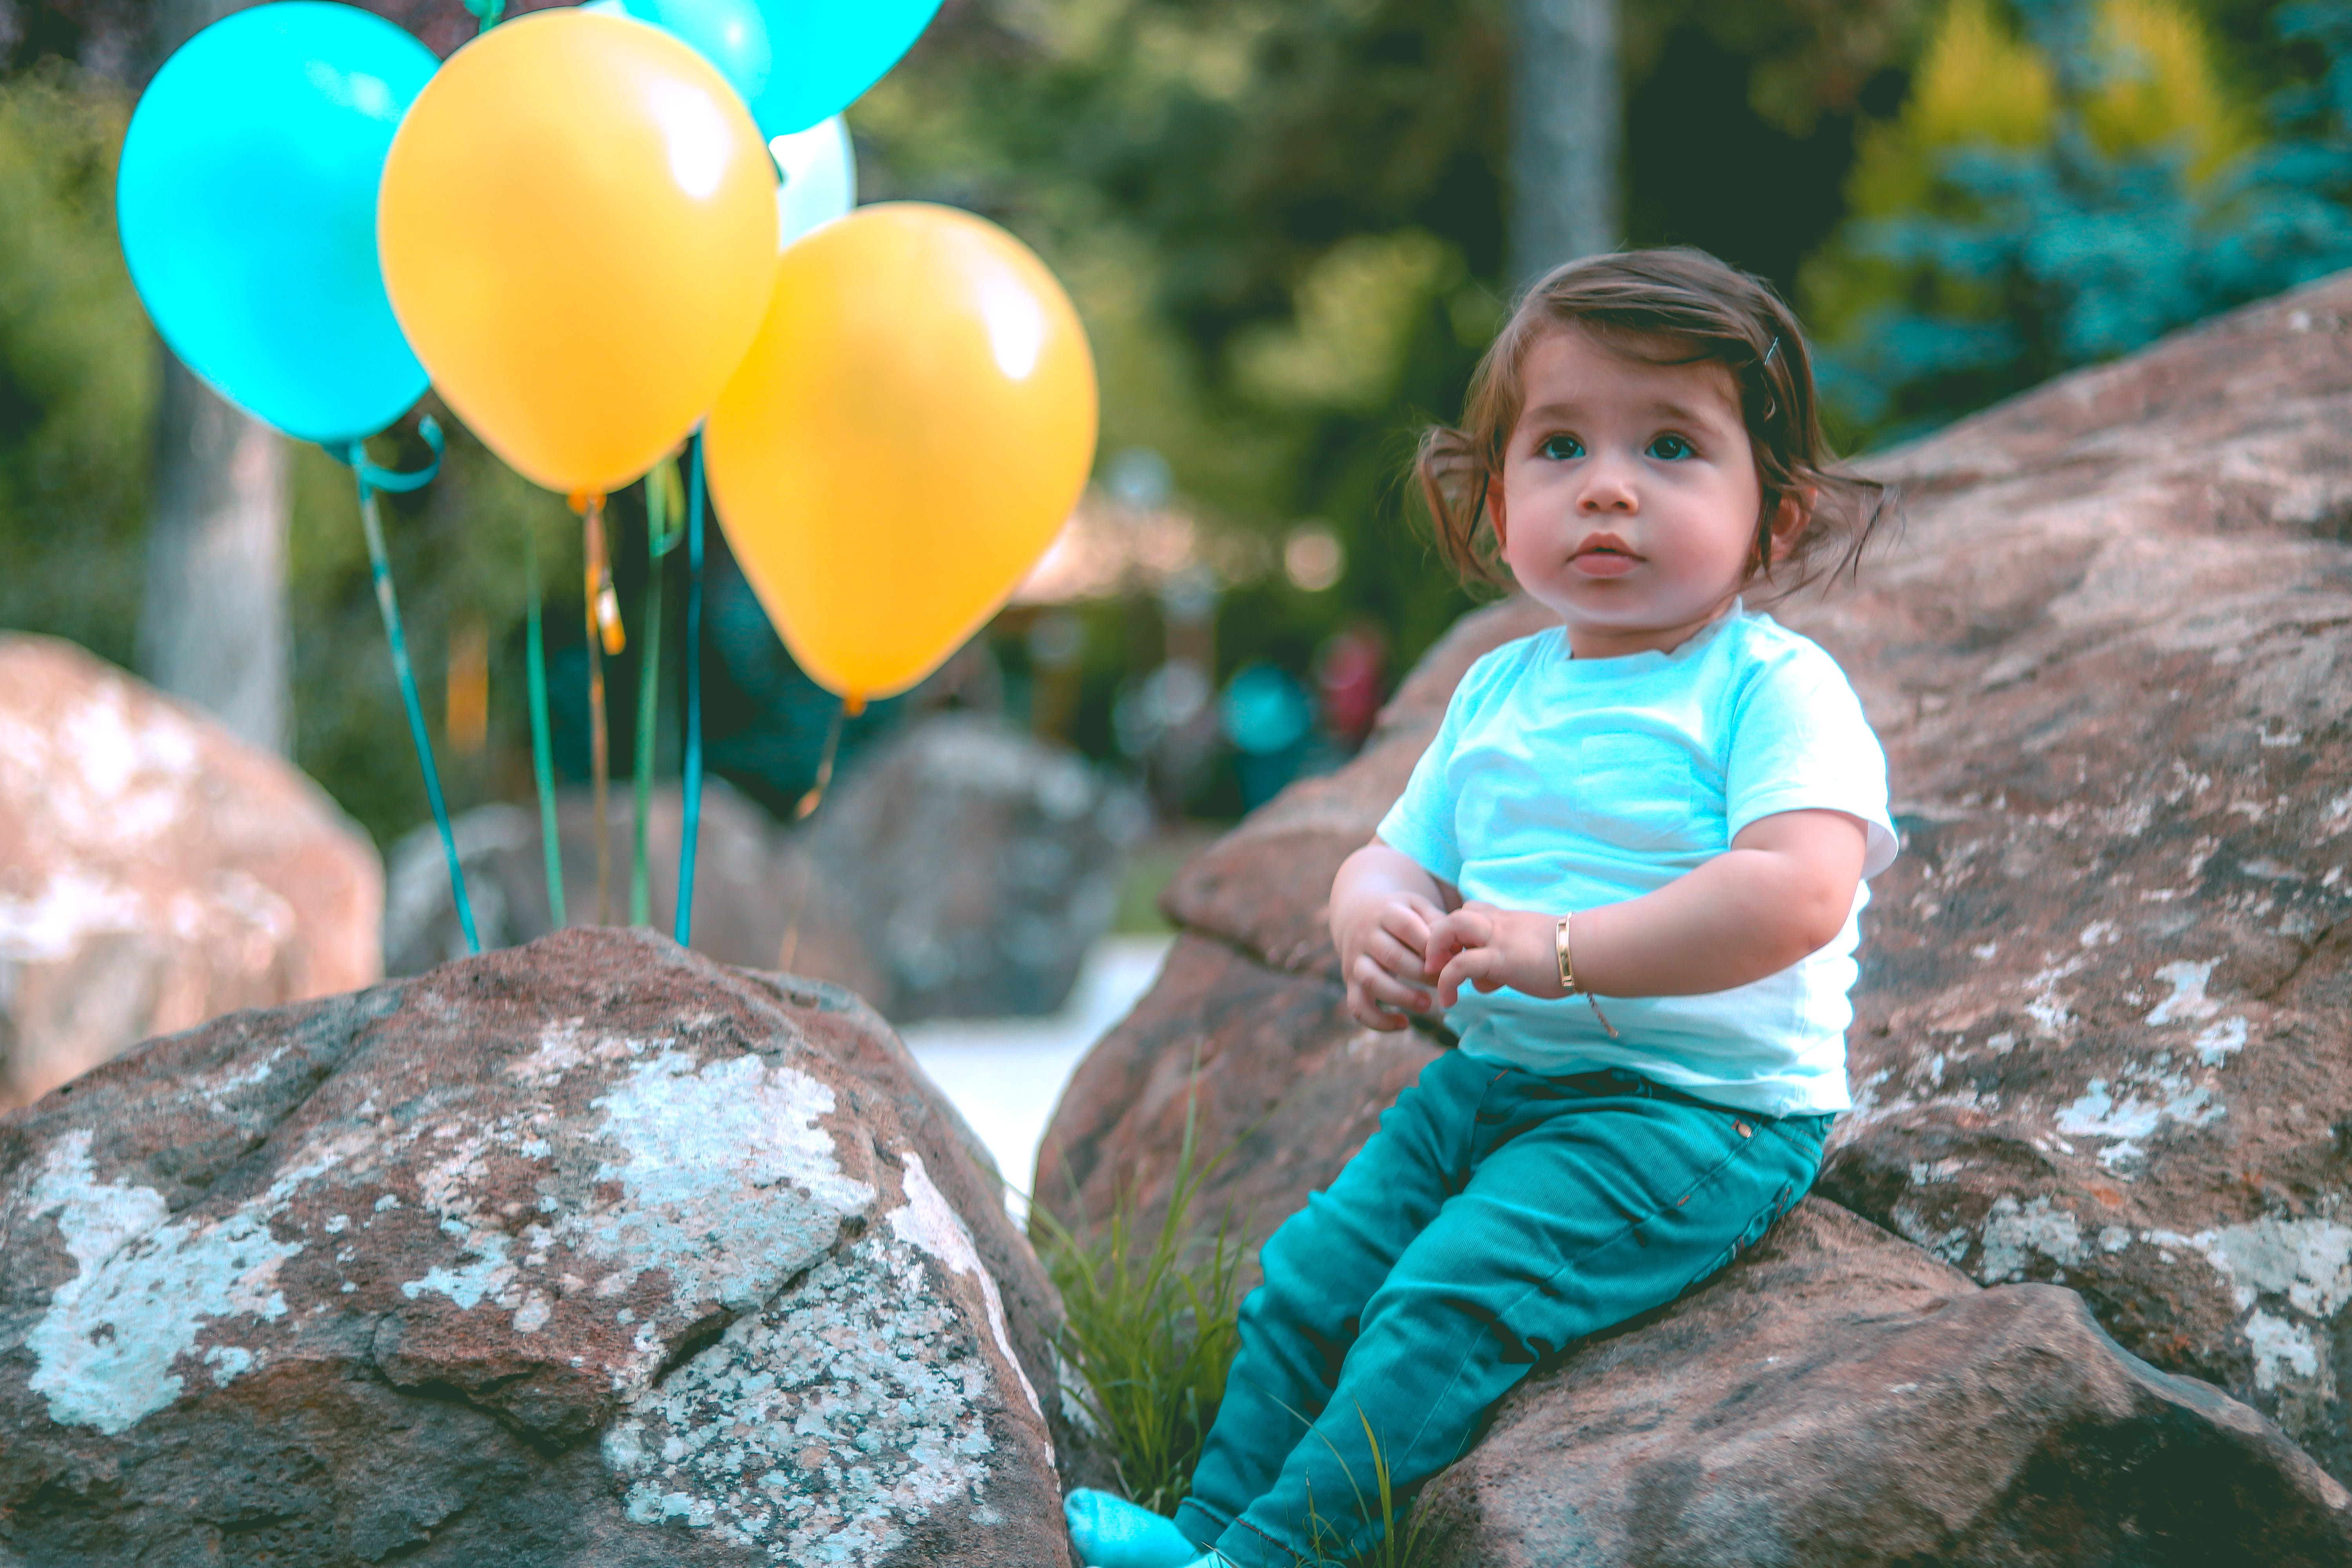 Toddler Wearing White Shirt Sitting on Rock Beside Yellow and Blue Balloons